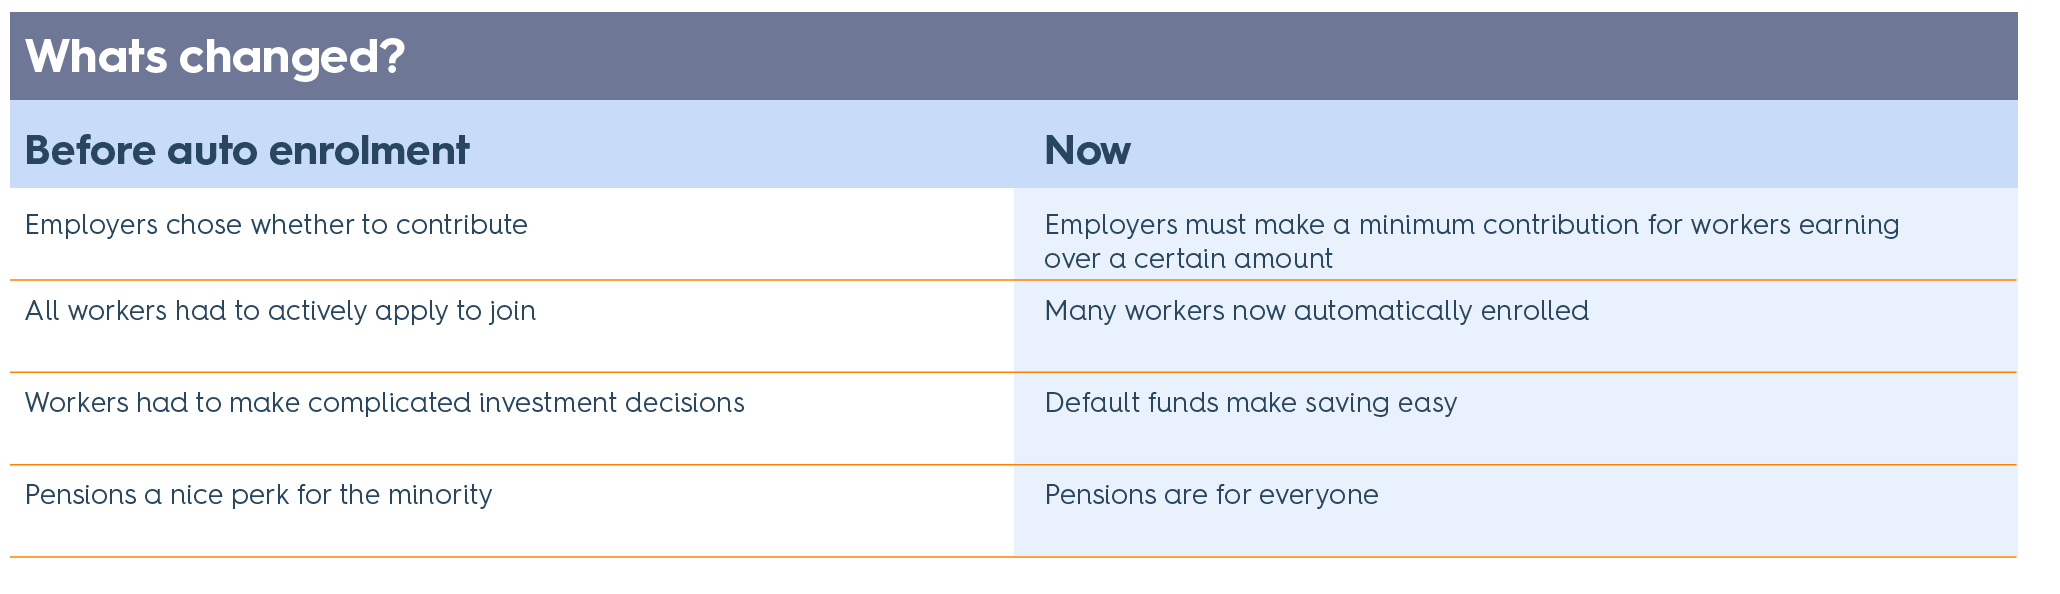 A graphic showing what's changed since auto enrolment